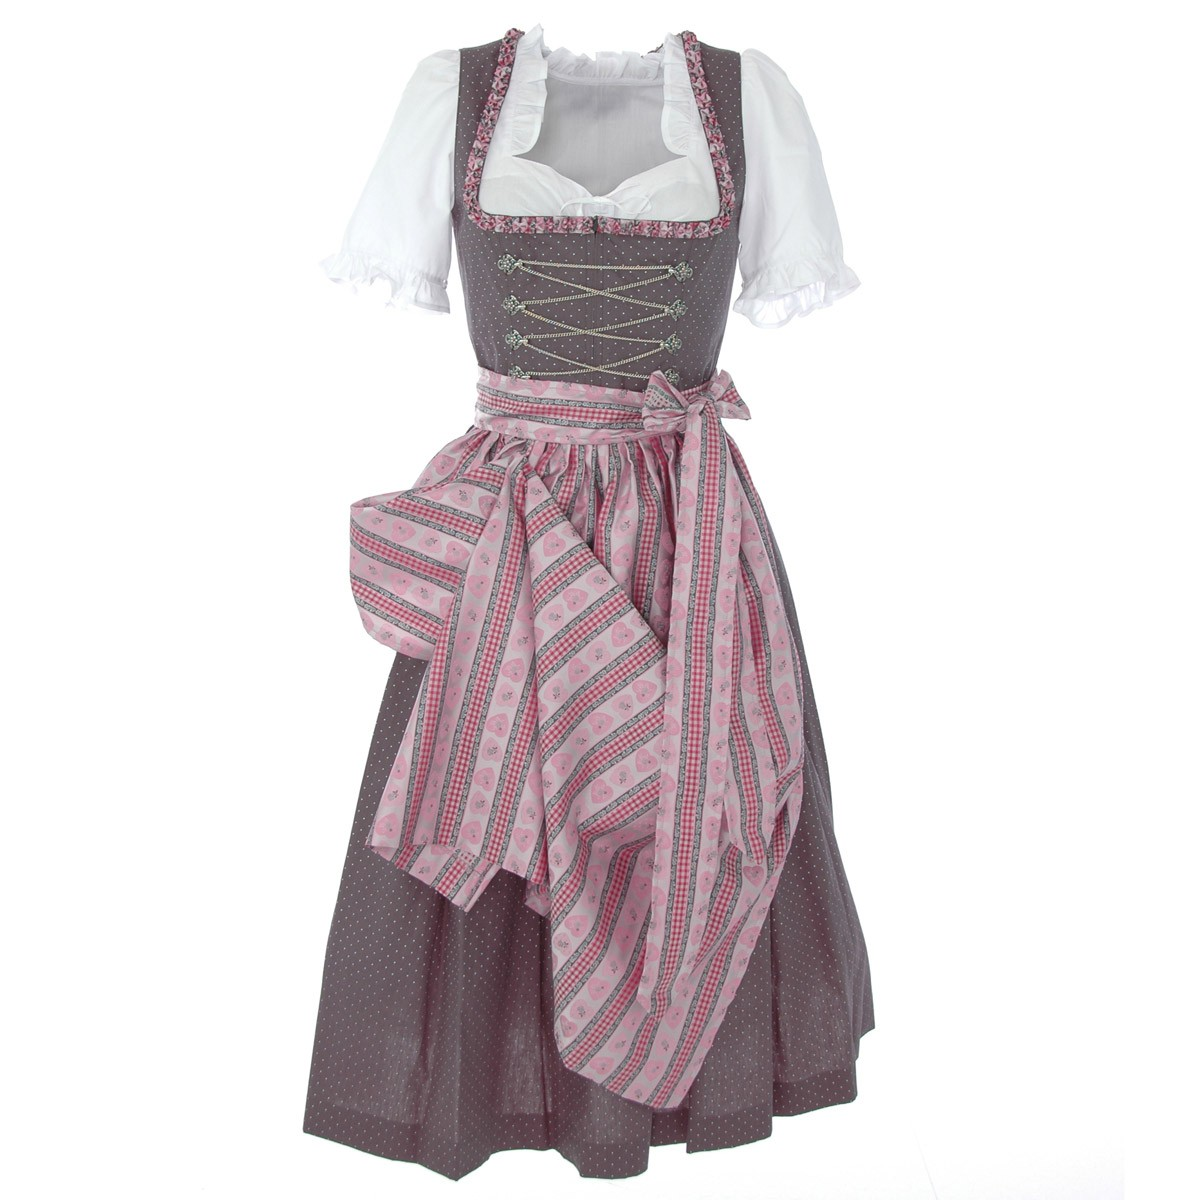 langes dirndl regina in grau von berwin und wolff ebay. Black Bedroom Furniture Sets. Home Design Ideas